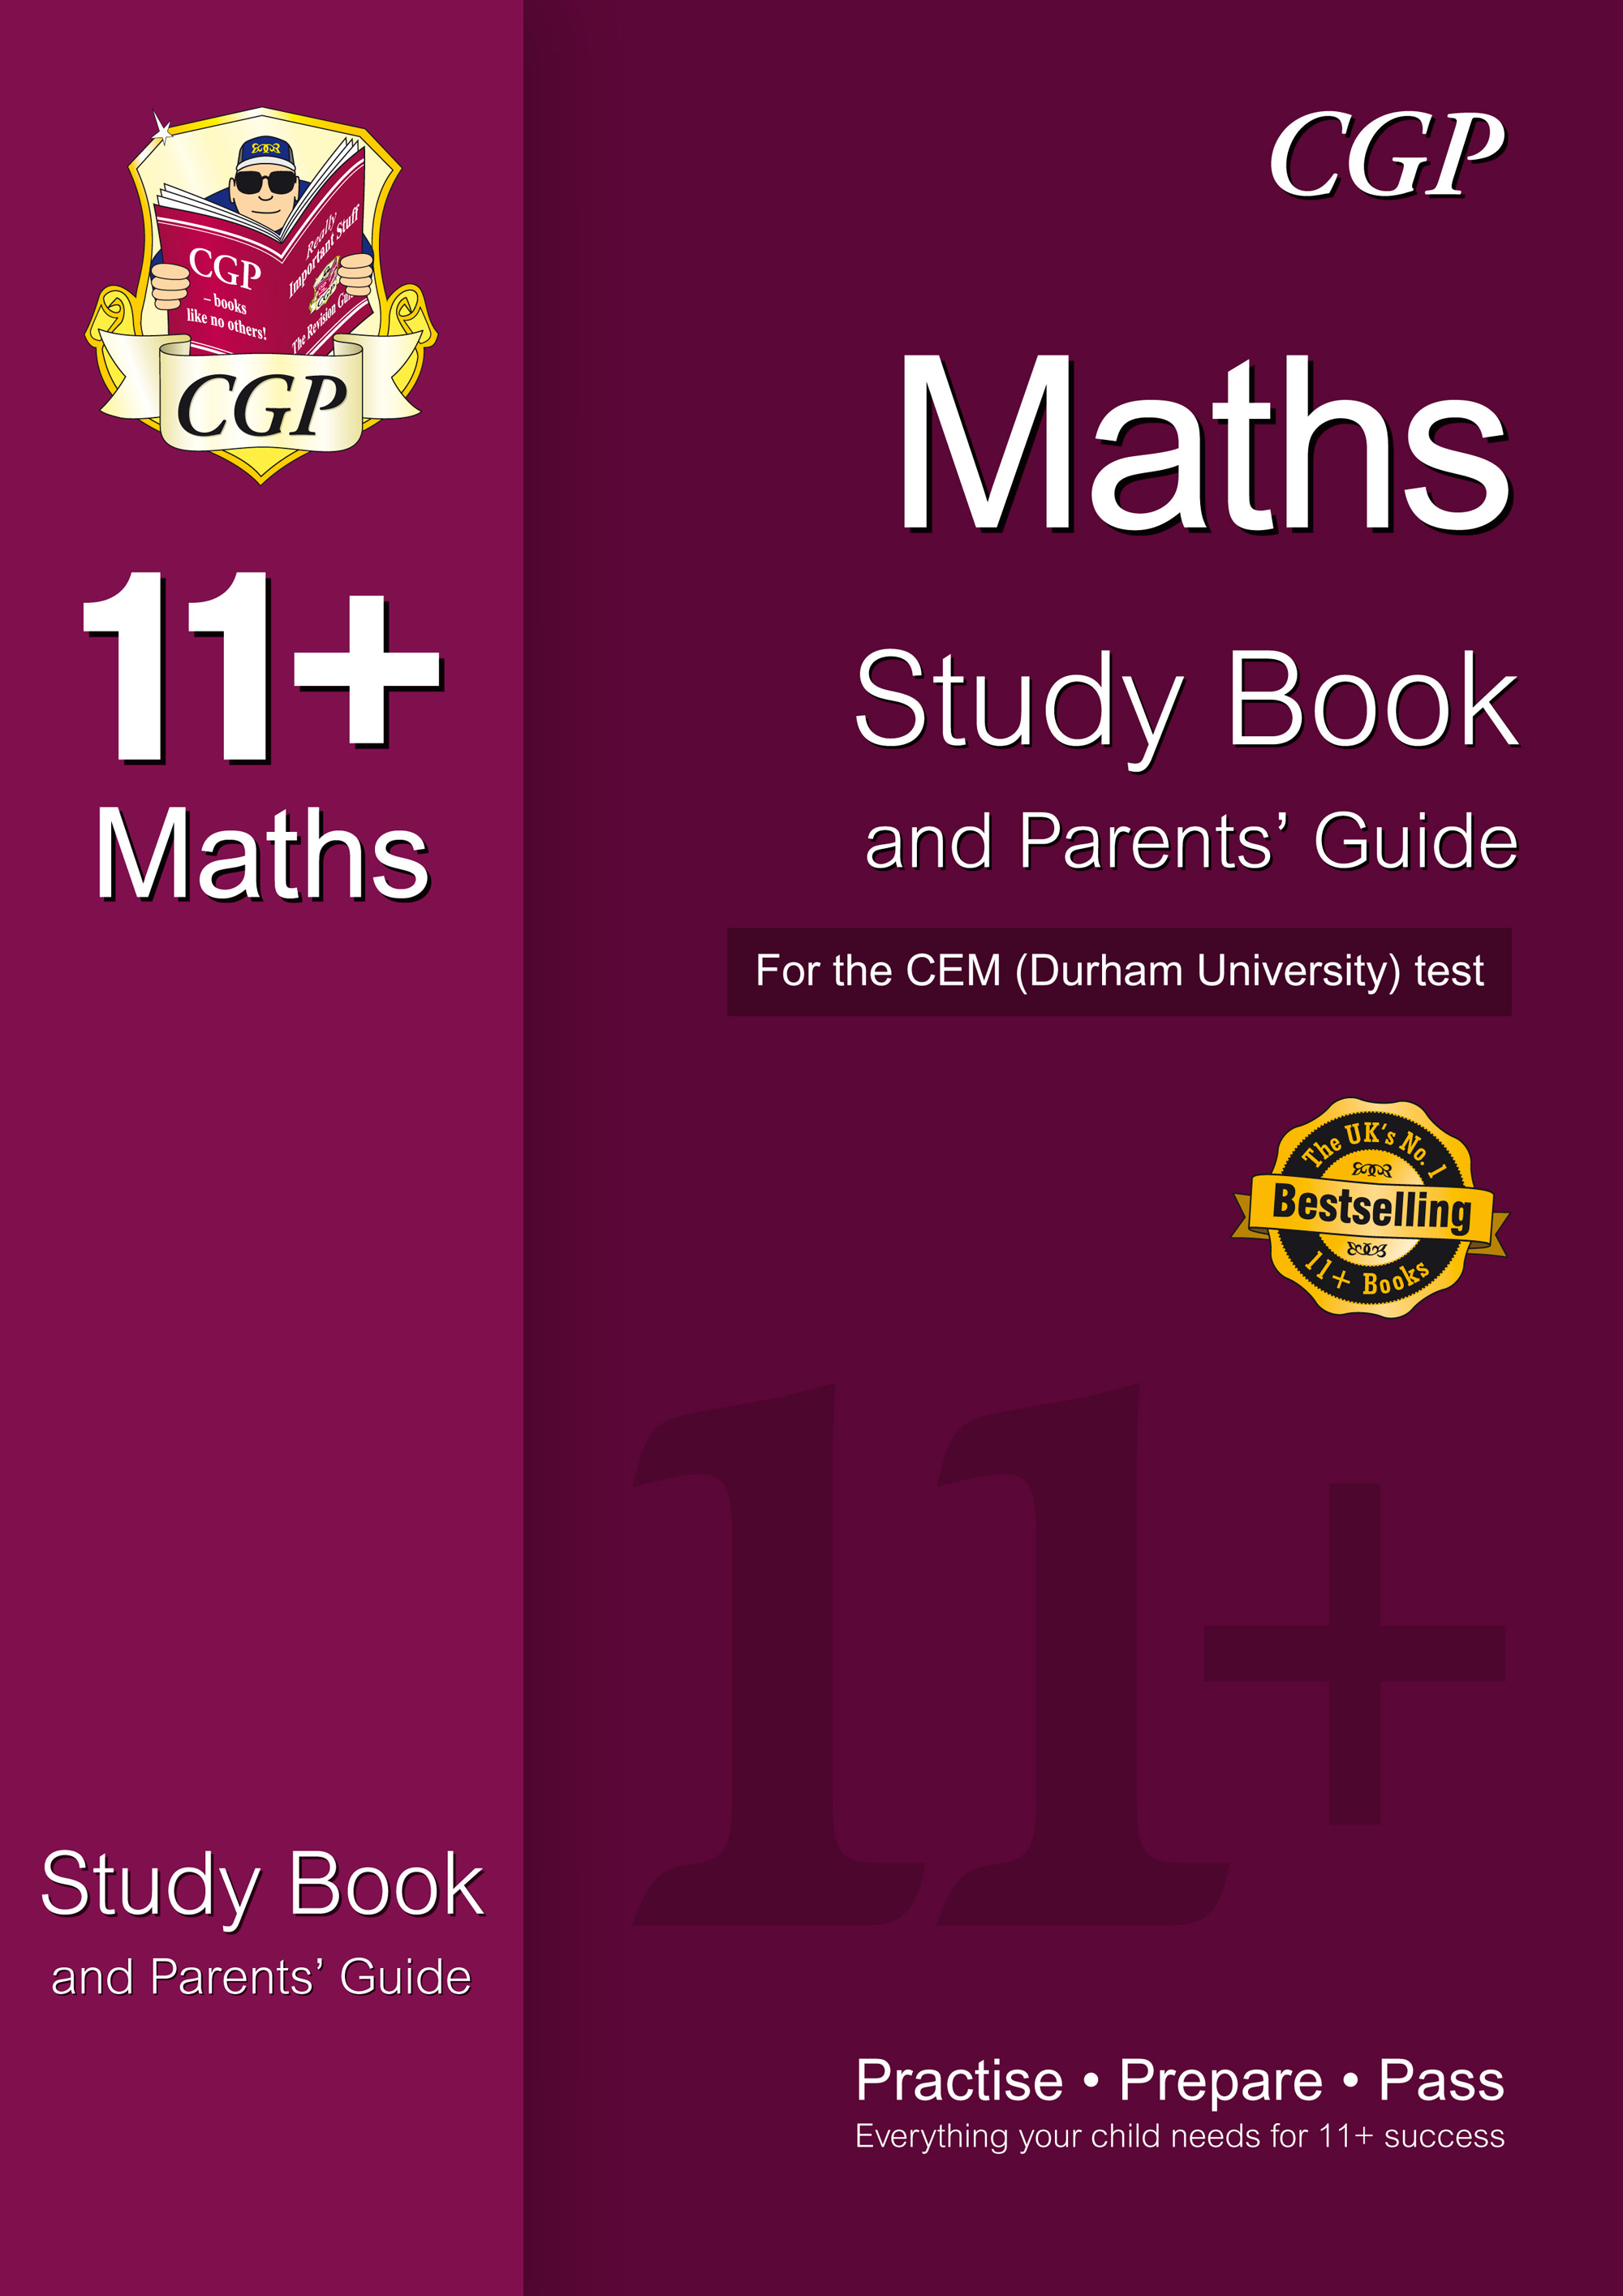 MHRDE1 - 11+ Maths Study Book and Parents' Guide for the CEM Test